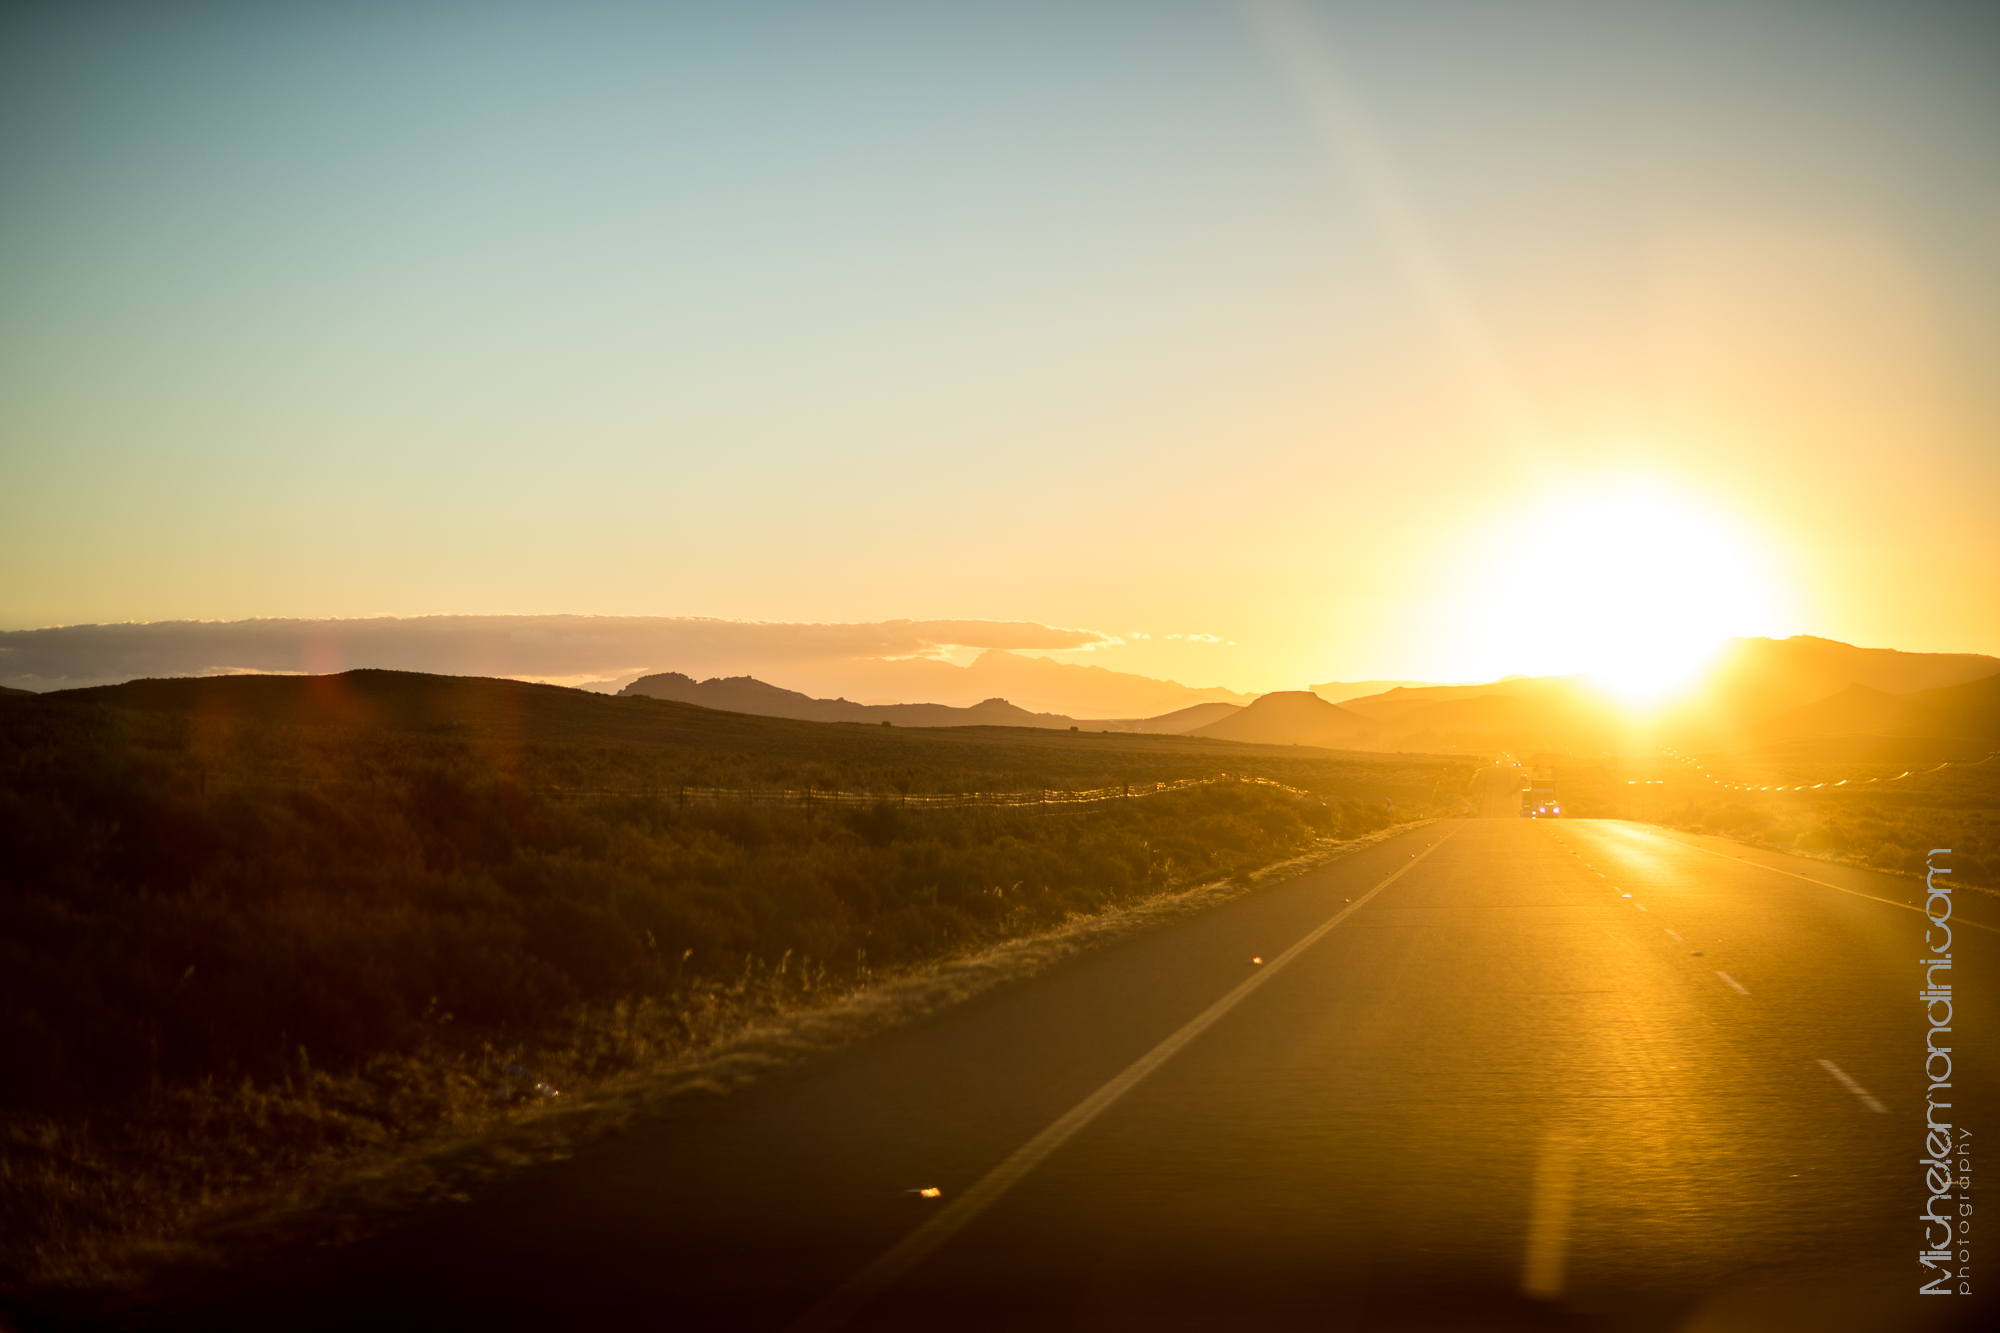 Driving back to Cape Town